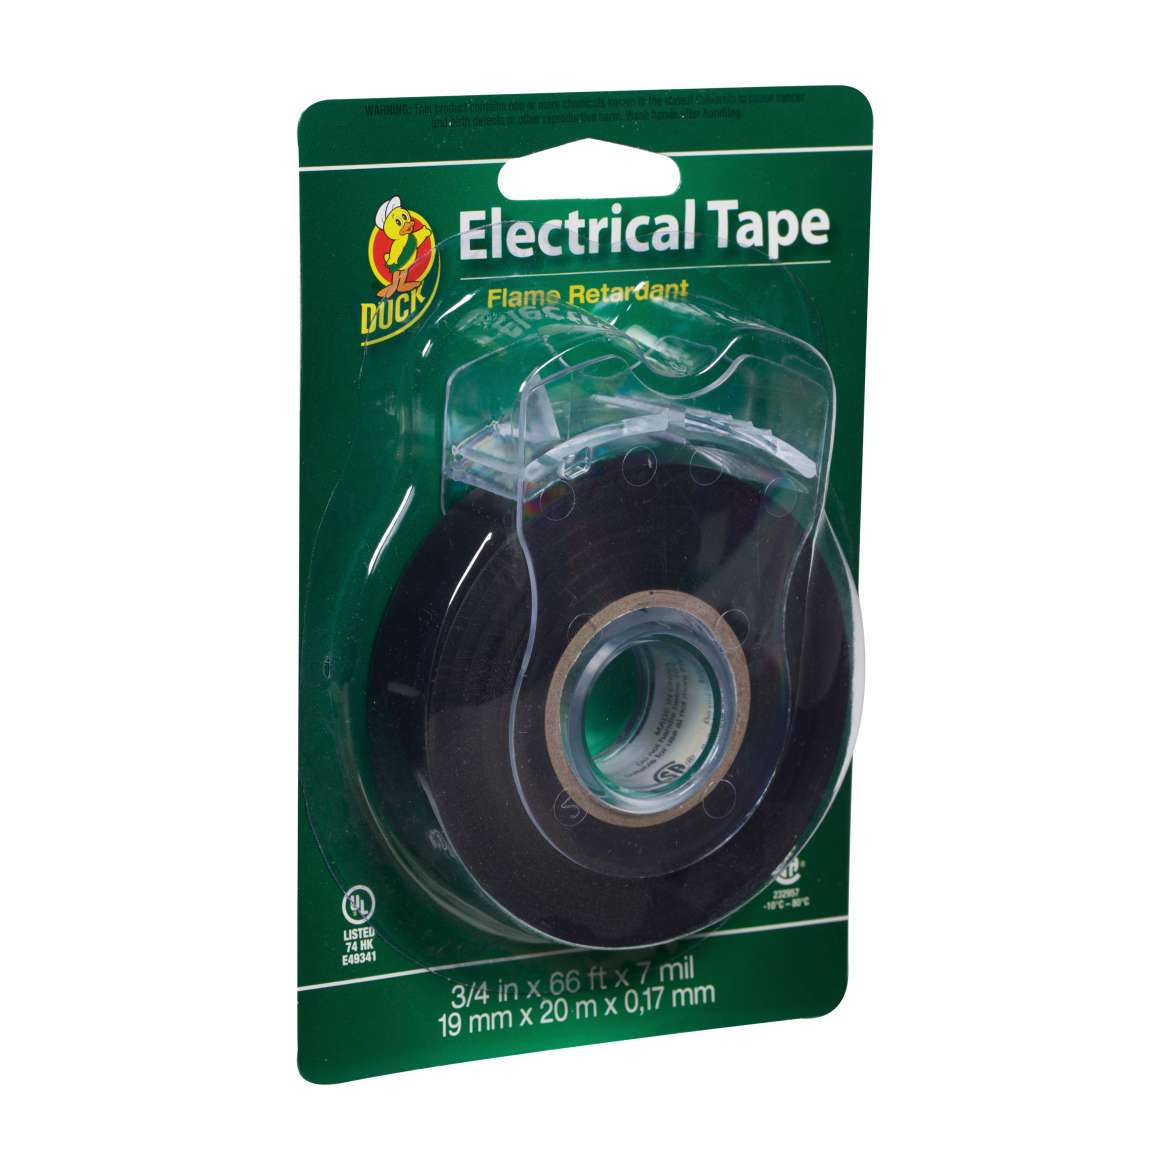 Duck® Brand Professional Electrical Tape with Dispenser - Black, .75 in. x 66 ft. x 7 mil. Image